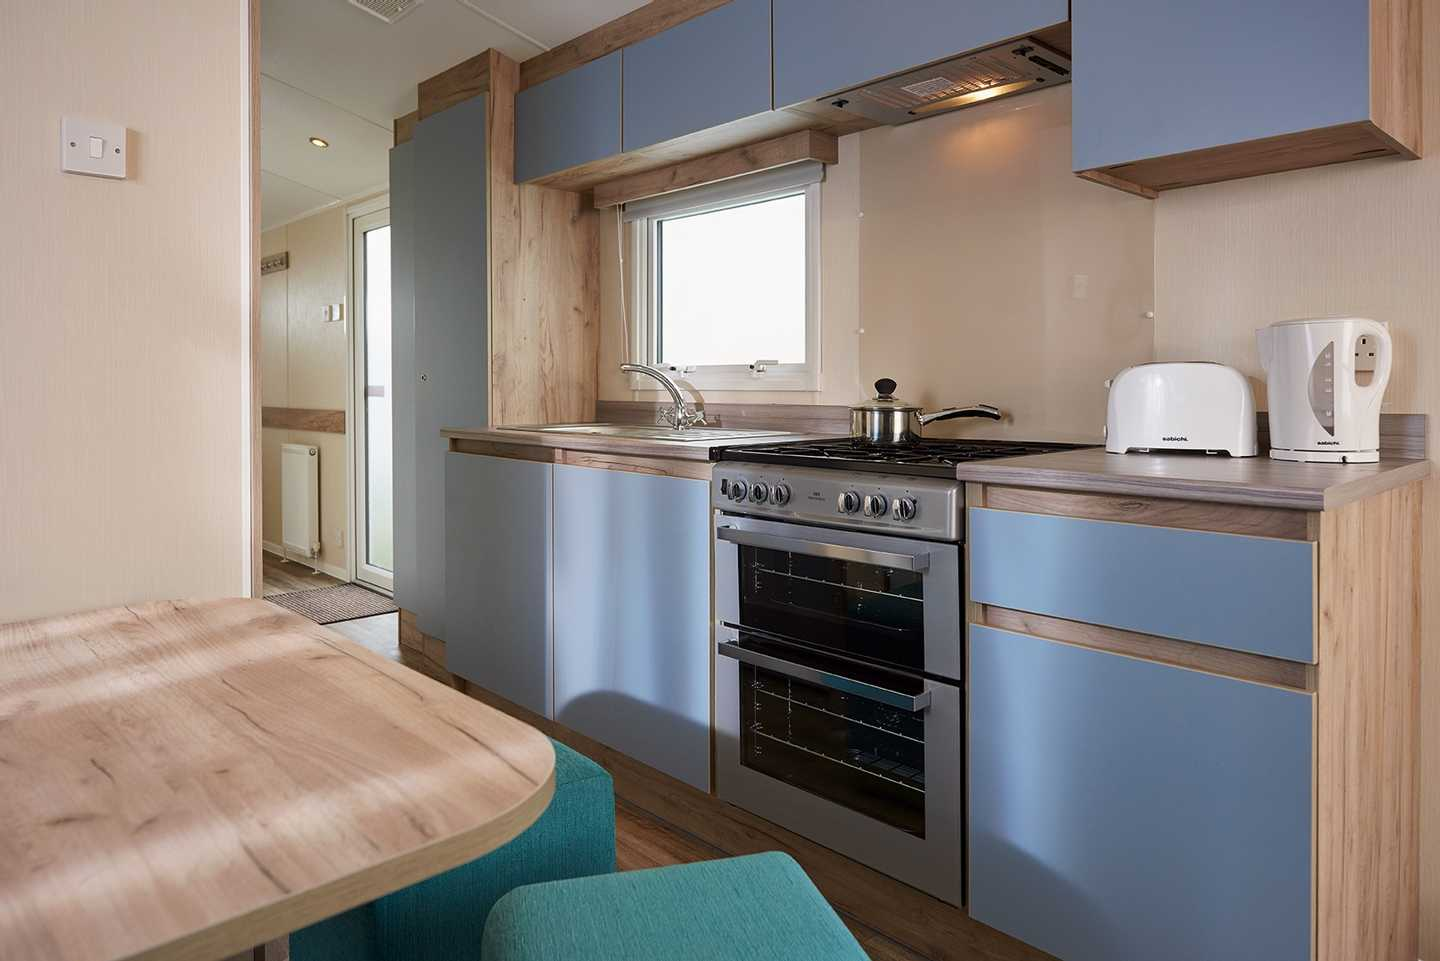 A newer Standard caravan kitchen with cooker, toaster and kettle